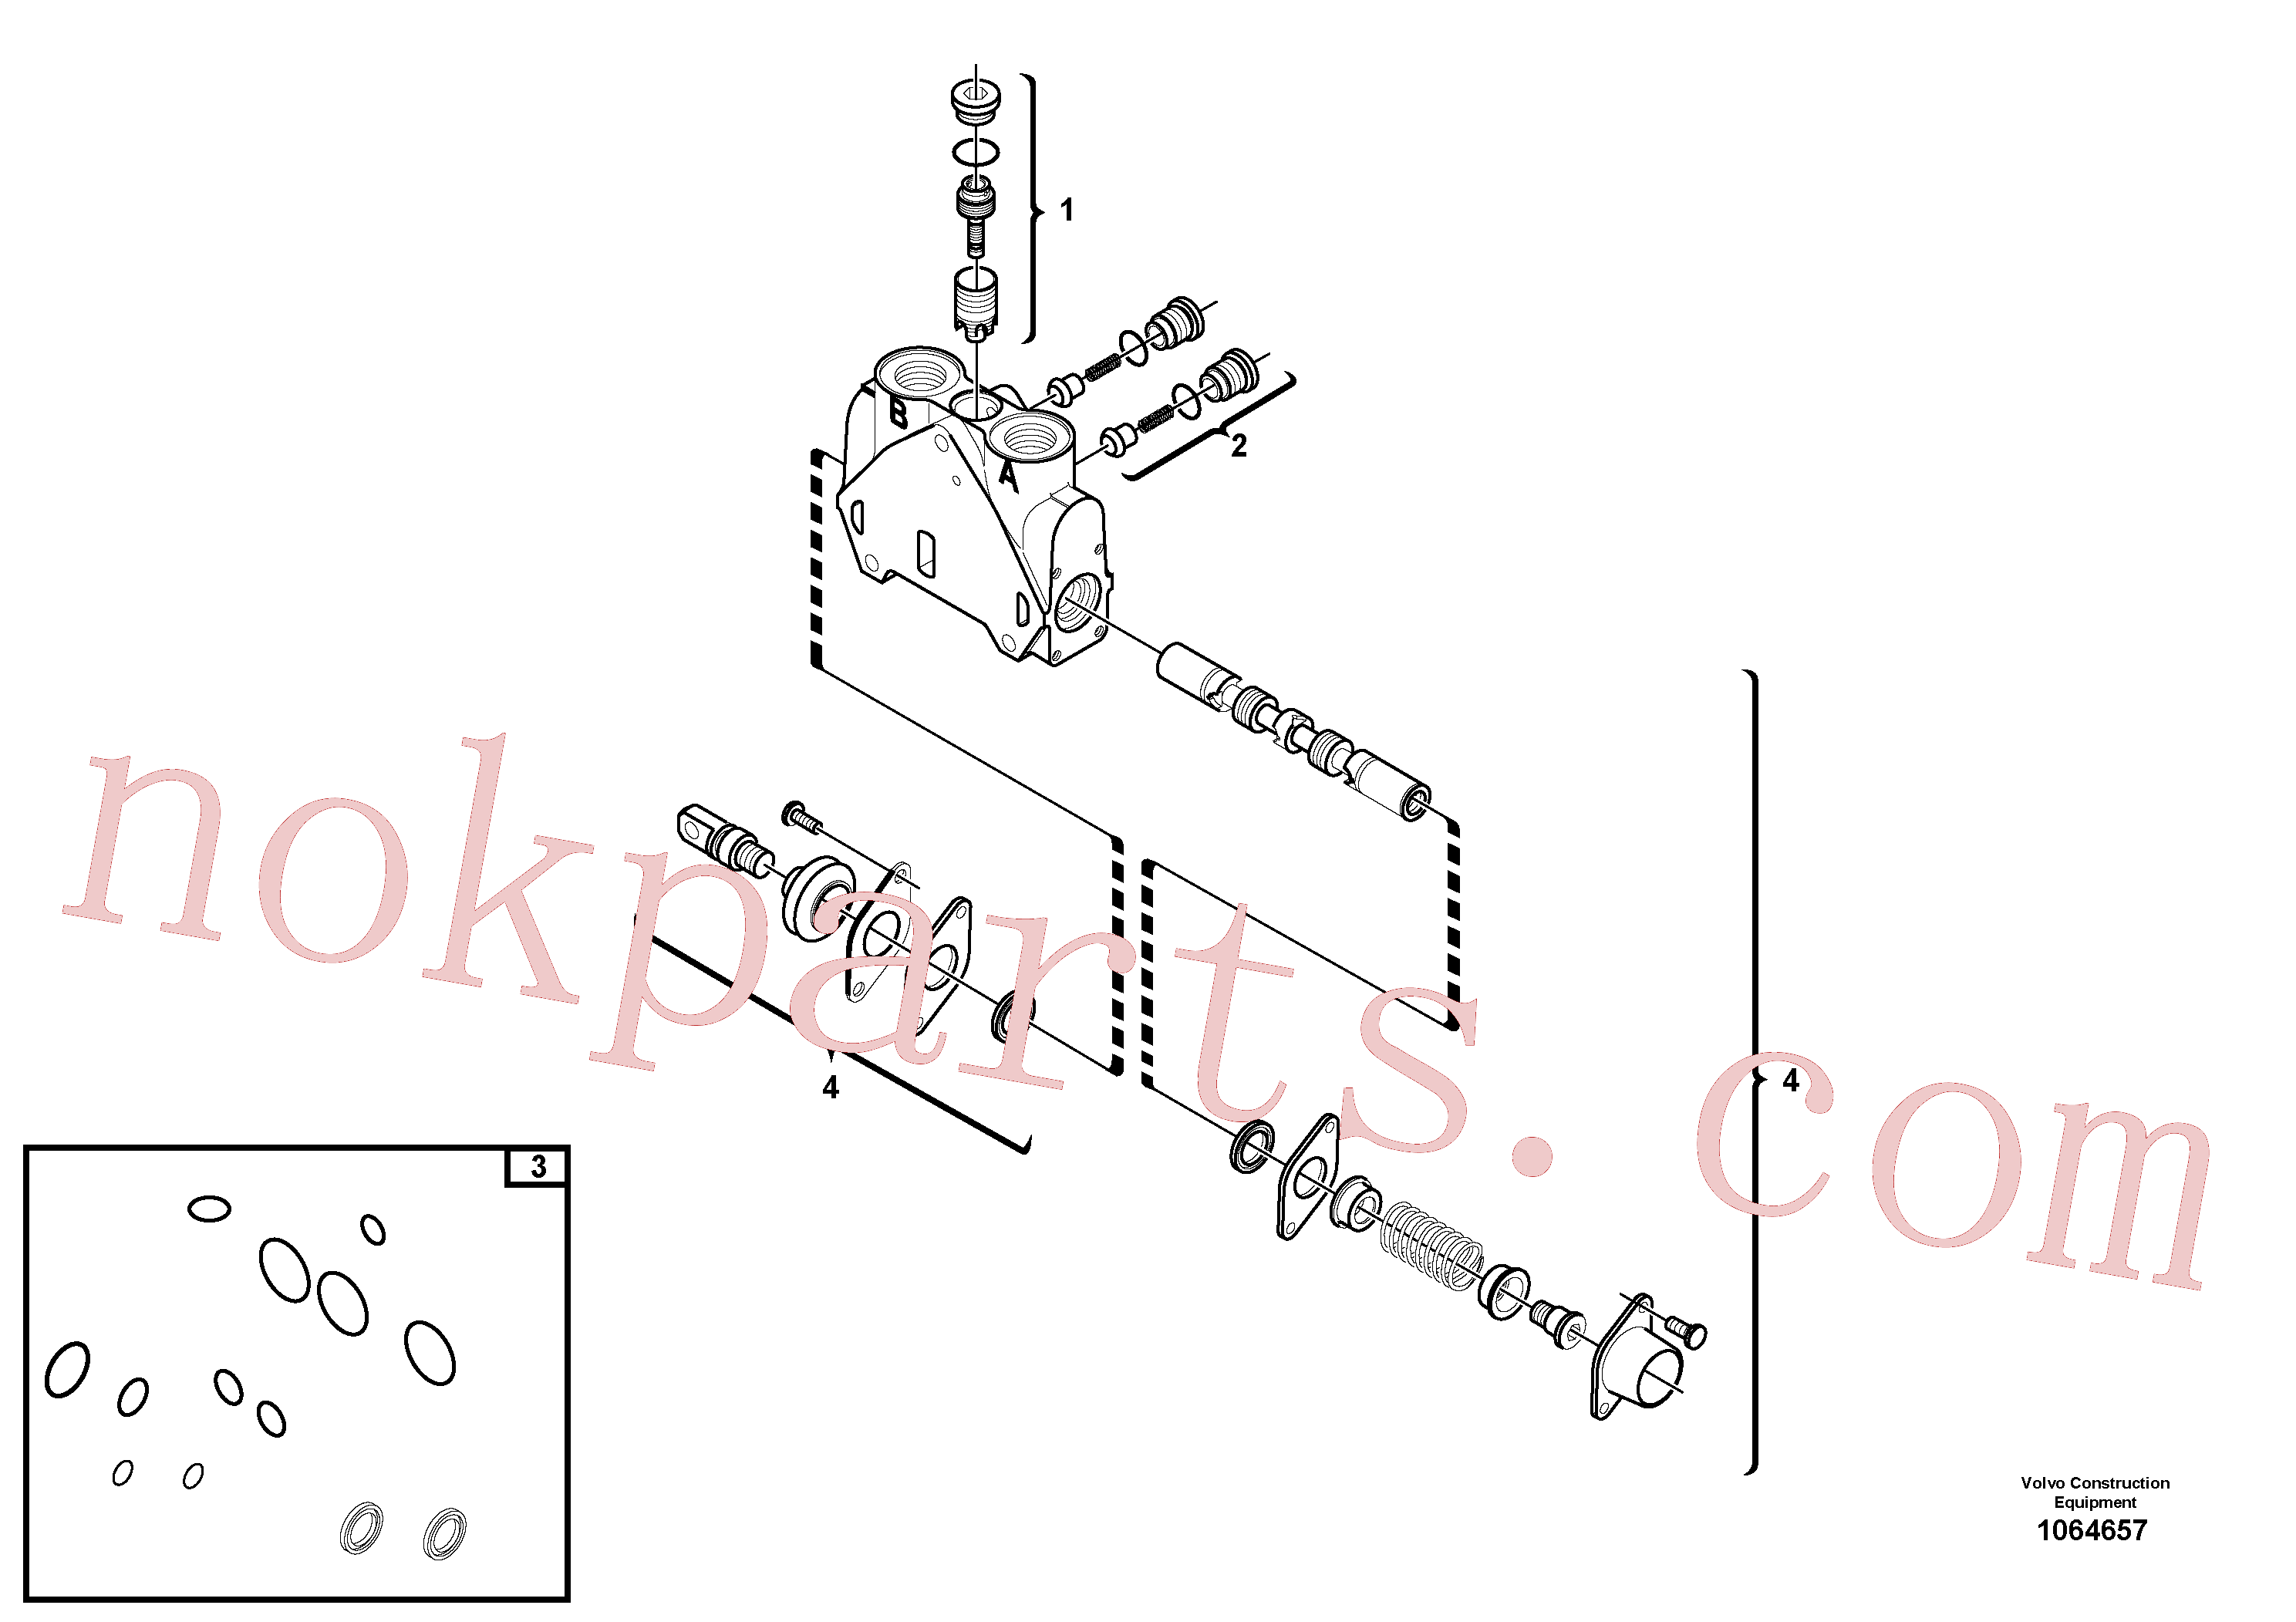 VOE15171623 for Volvo Valve section(1064657 assembly)